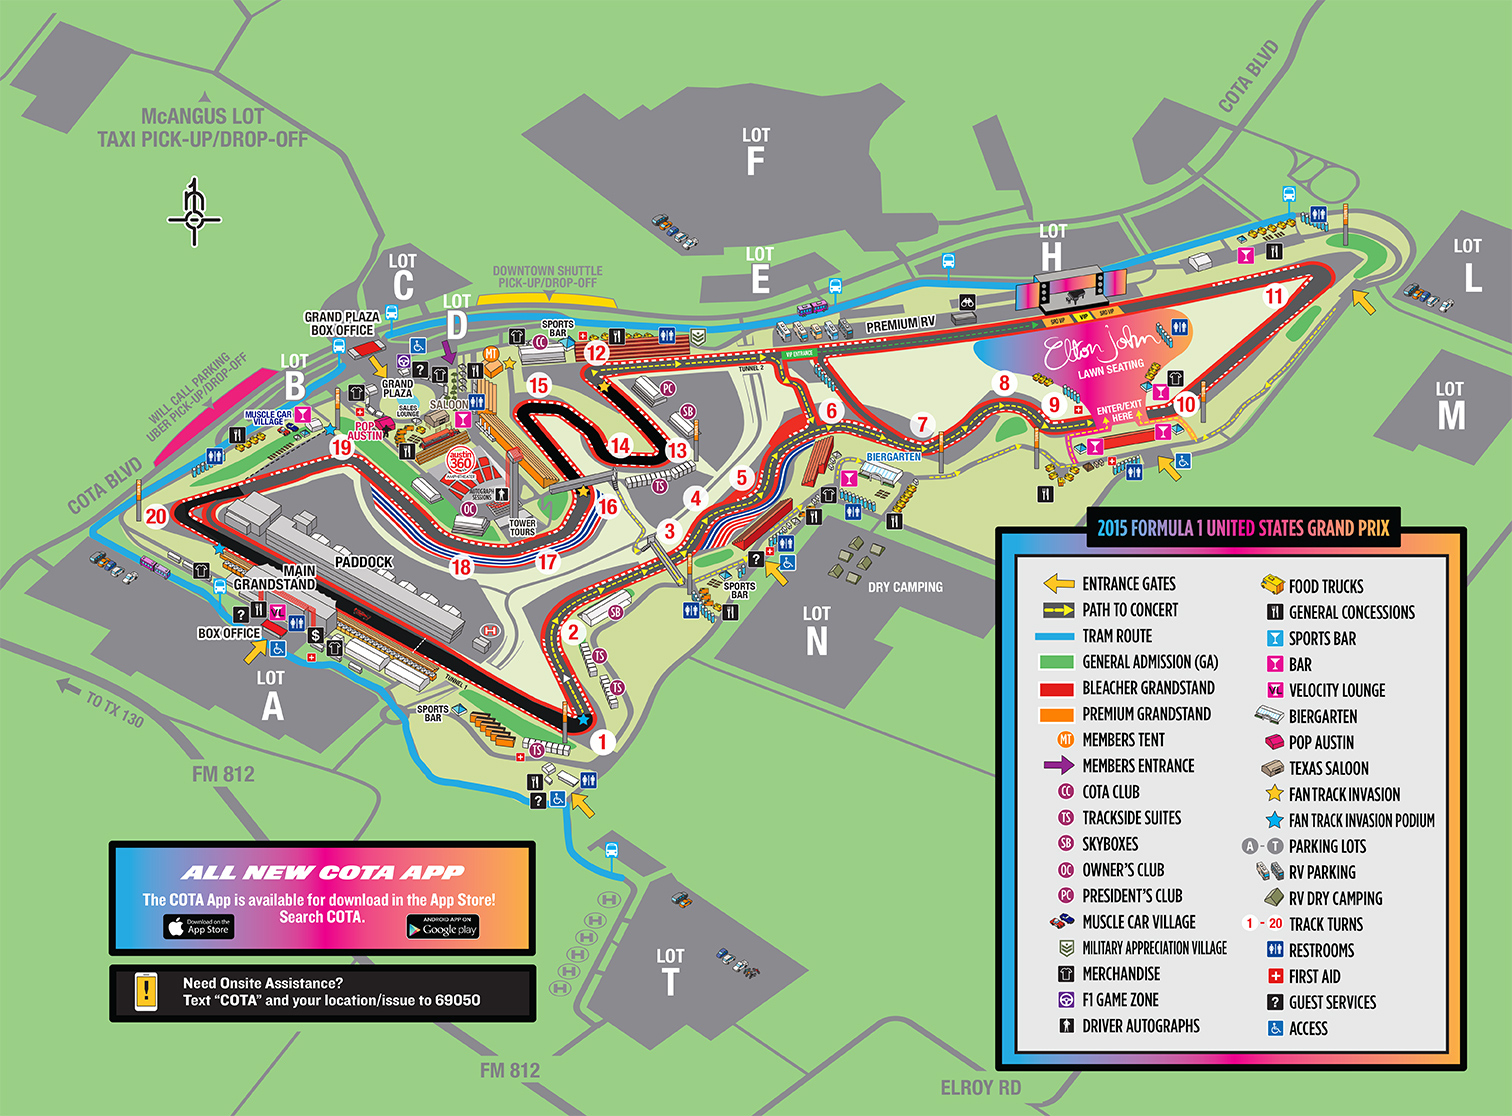 Welcome To Circuit Of The Americas For The 2015 Formula 1 United - Map Store Austin Texas